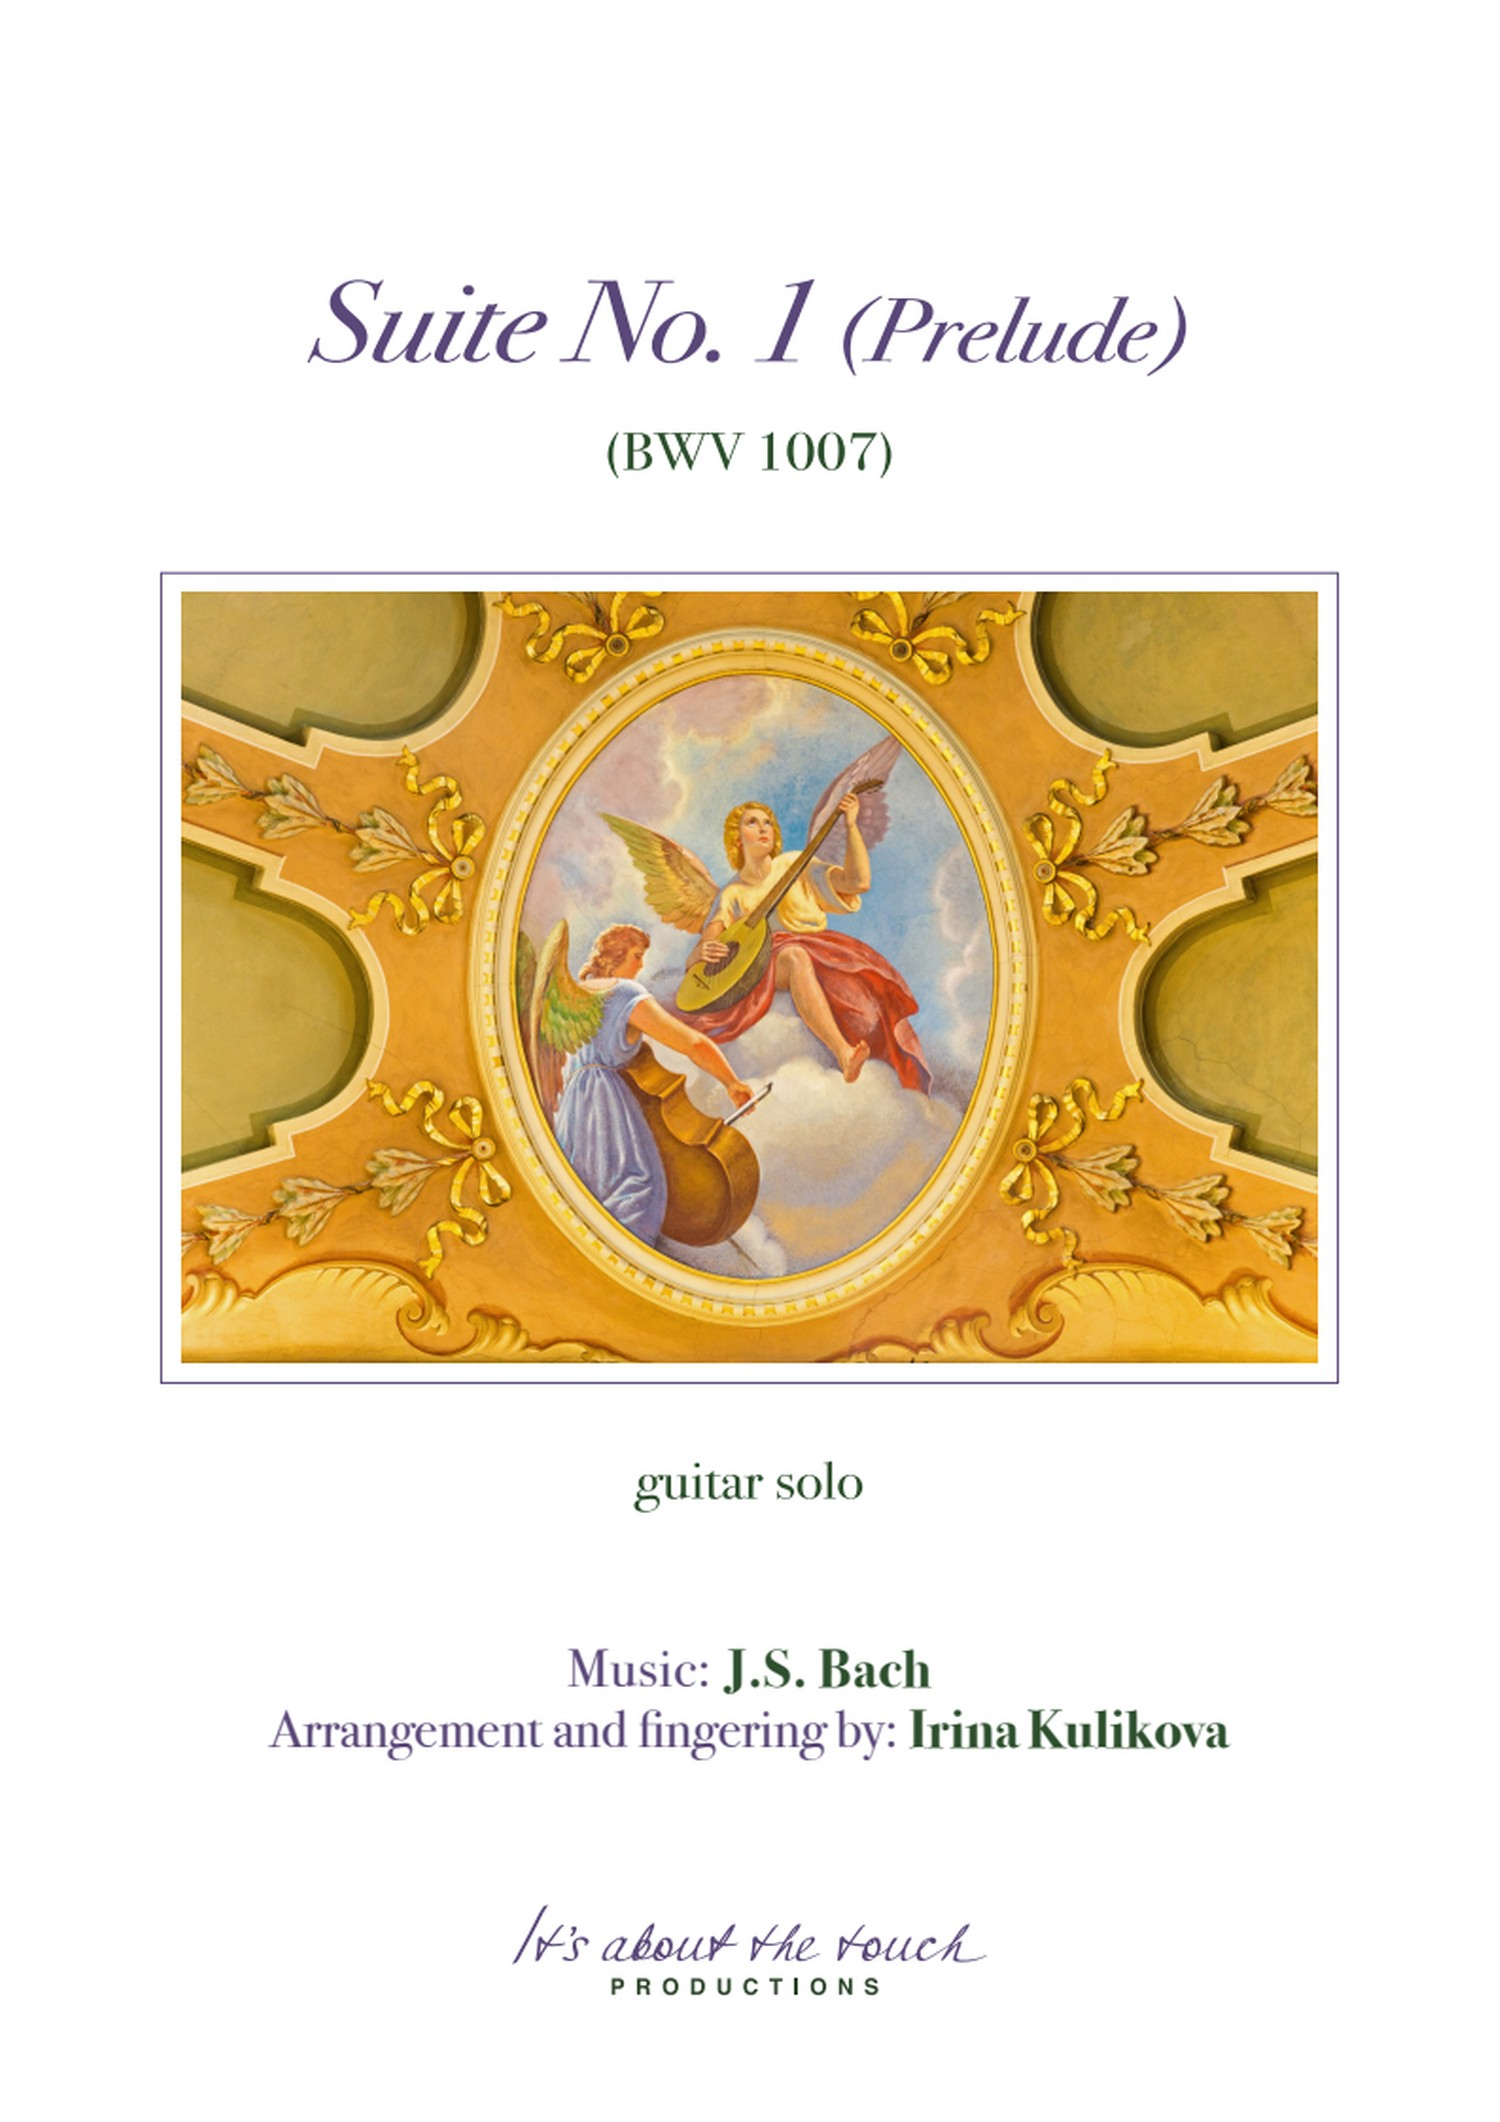 Bach Suite No. 1 Prelude score cover